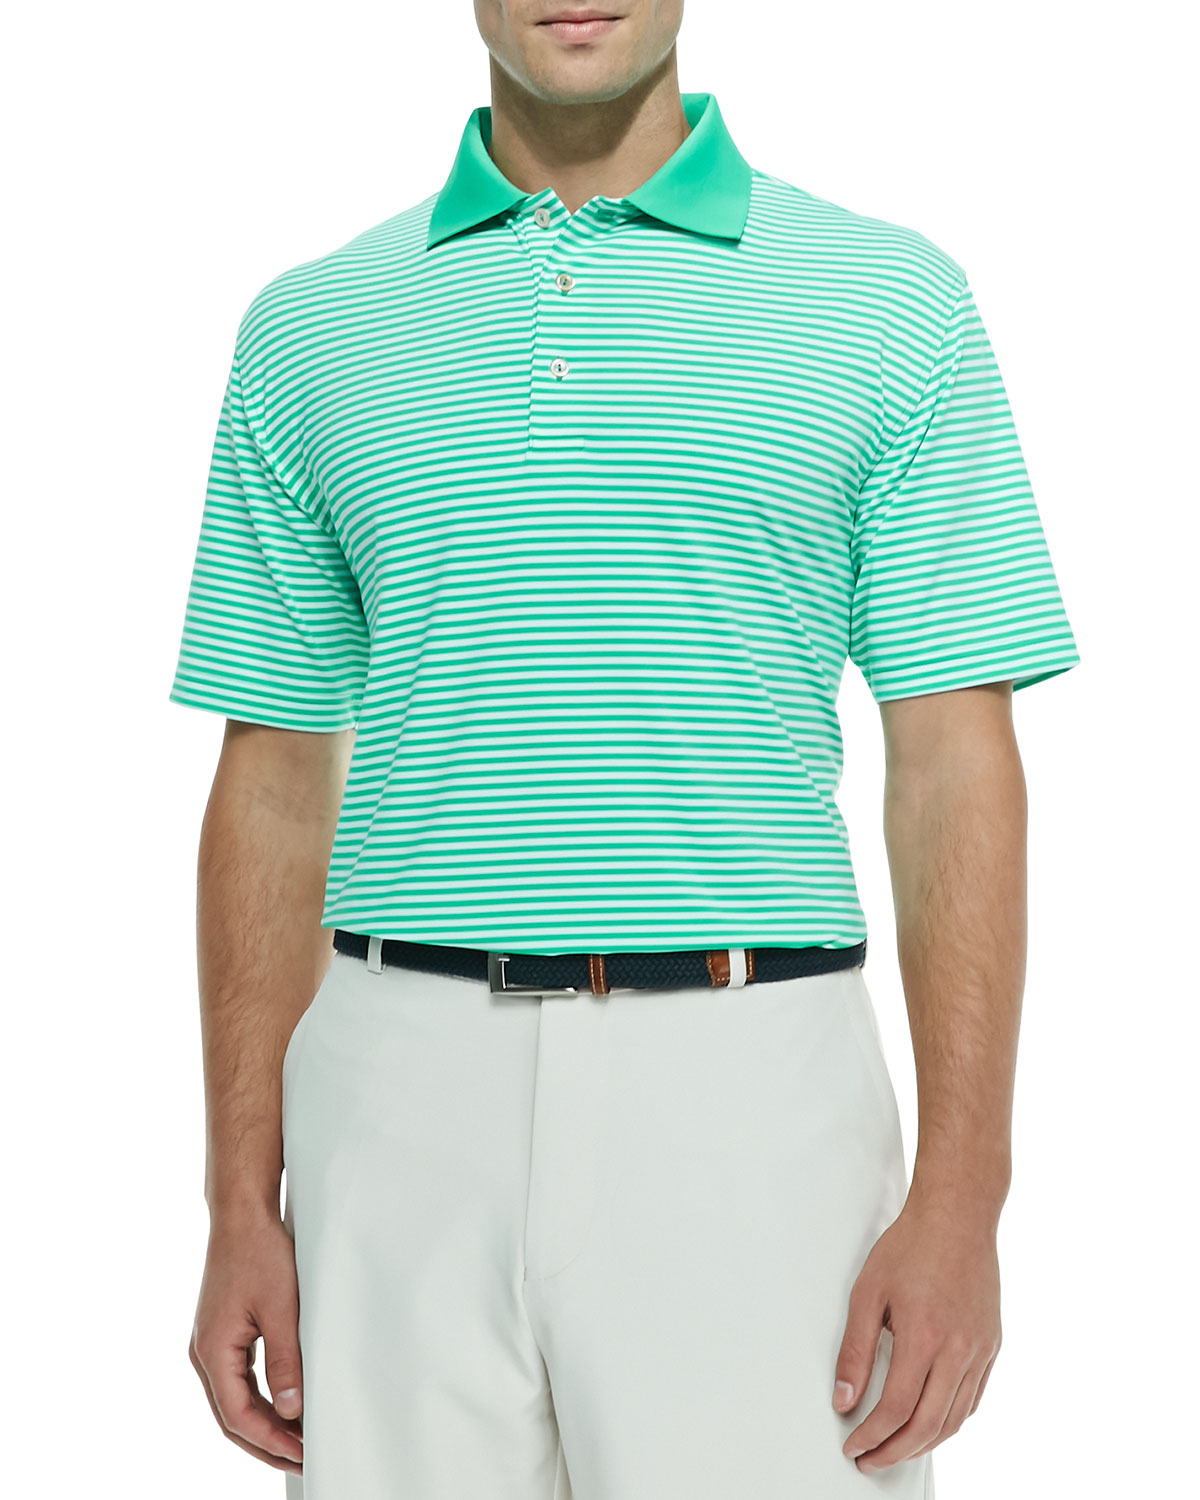 Peter millar striped jersey polo shirt in blue for men lyst for Peter millar polo shirts